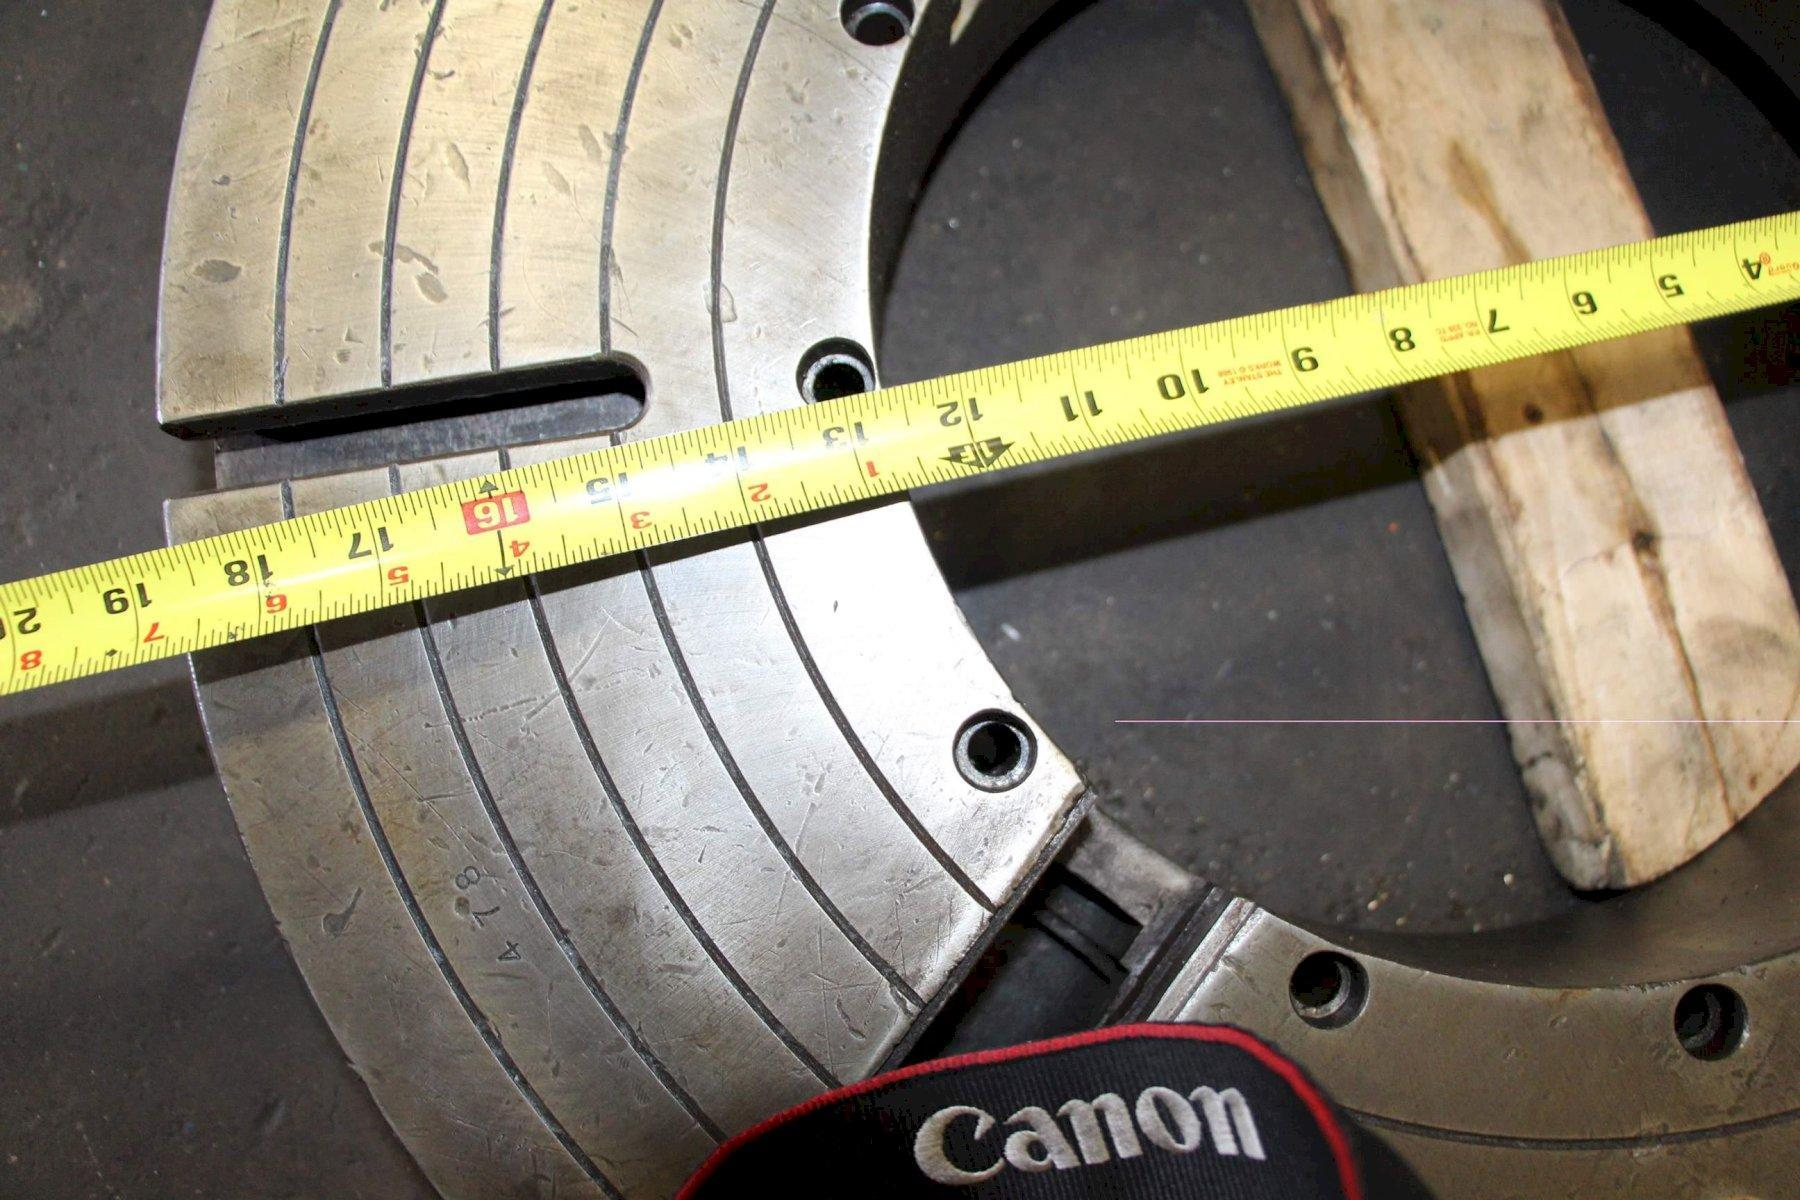 25-1/2' AXELSON 4 JAW LATHE CHUCK:  LOT #68771, OFF OF LOT #64479